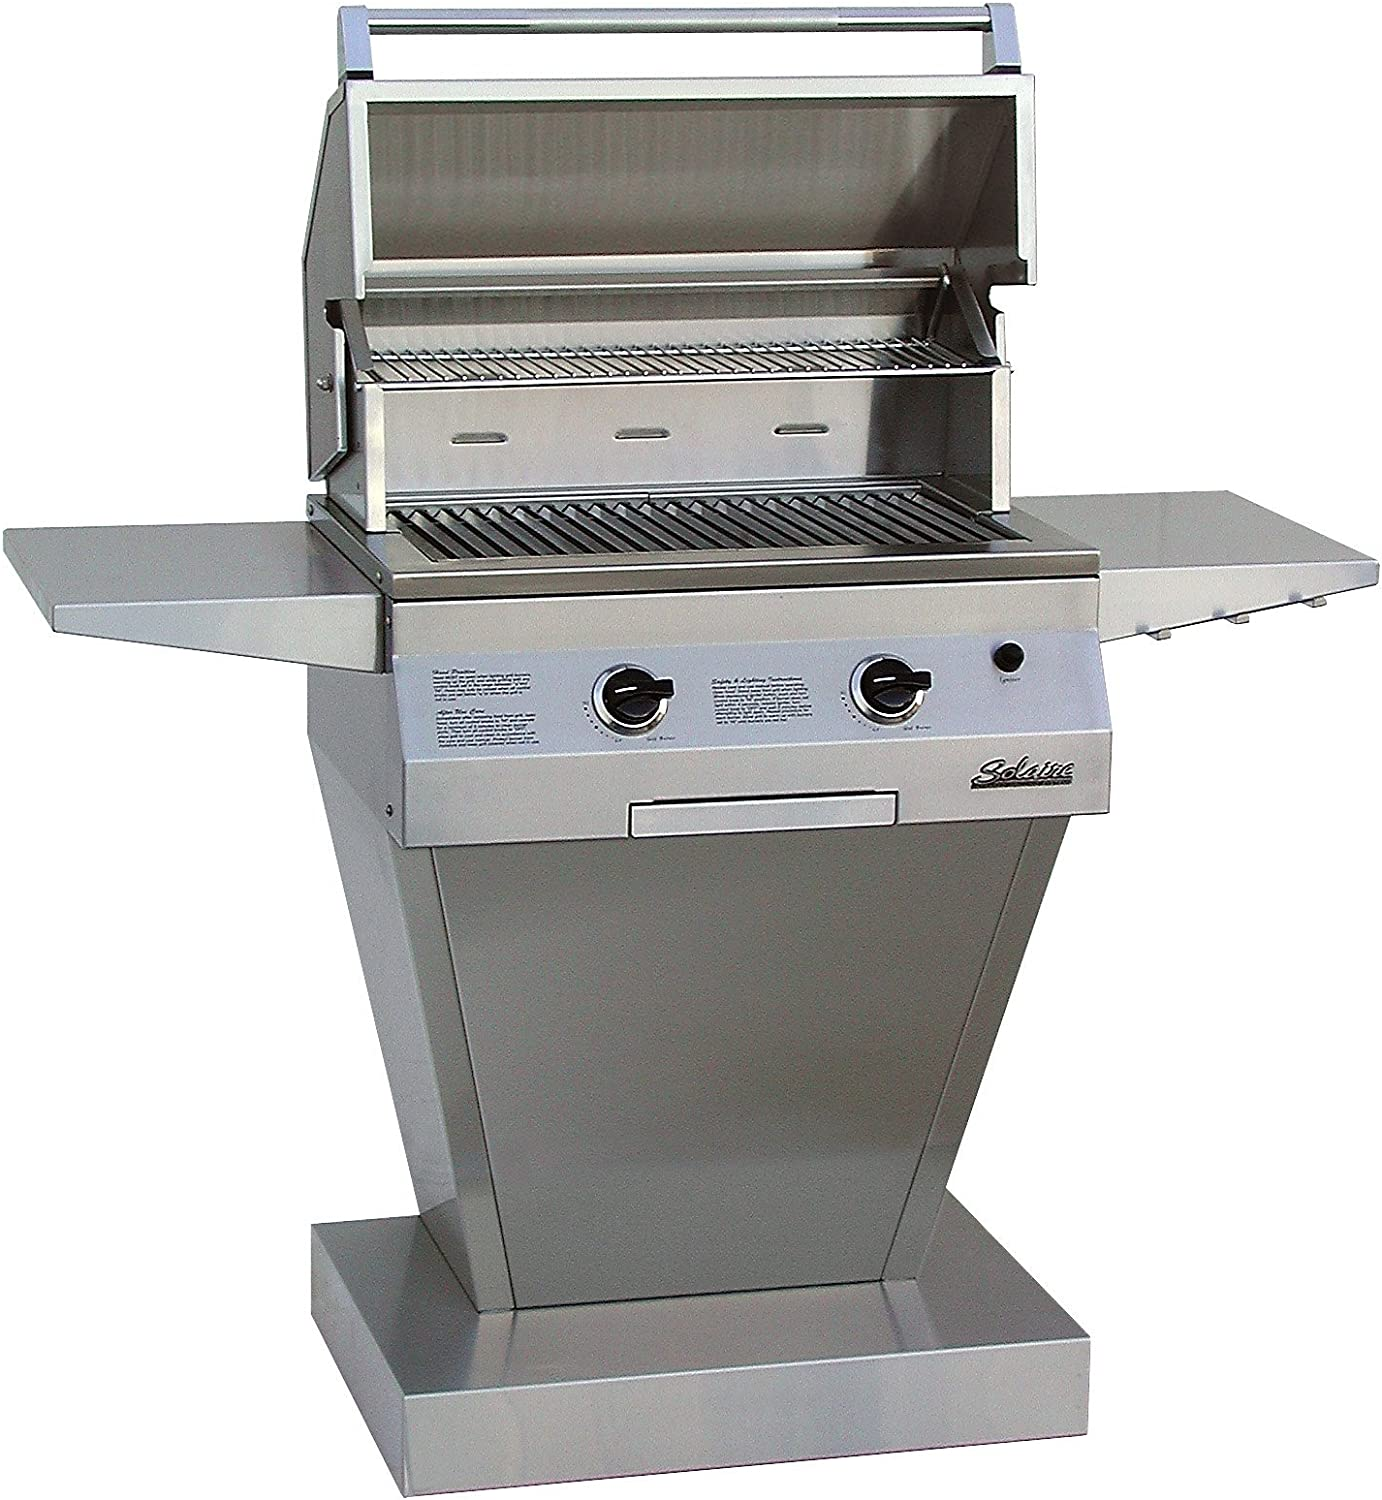 Solaire 27-Inch Basic Infrared Propane Pedestal Grill, Stainless Steel